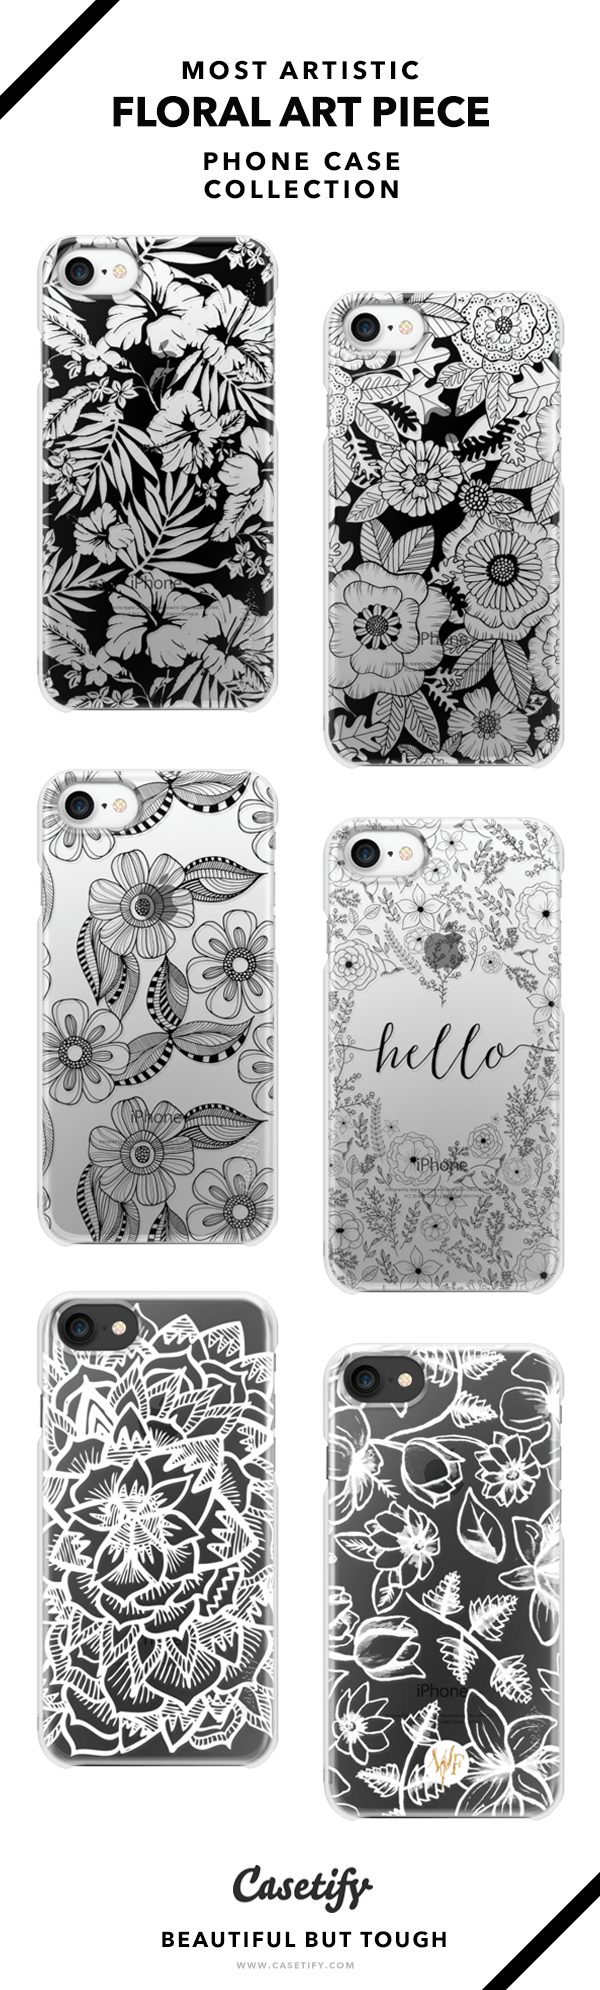 Most Artistic Floral Tattoo Phone Case Collection Iphone 6 6s 7